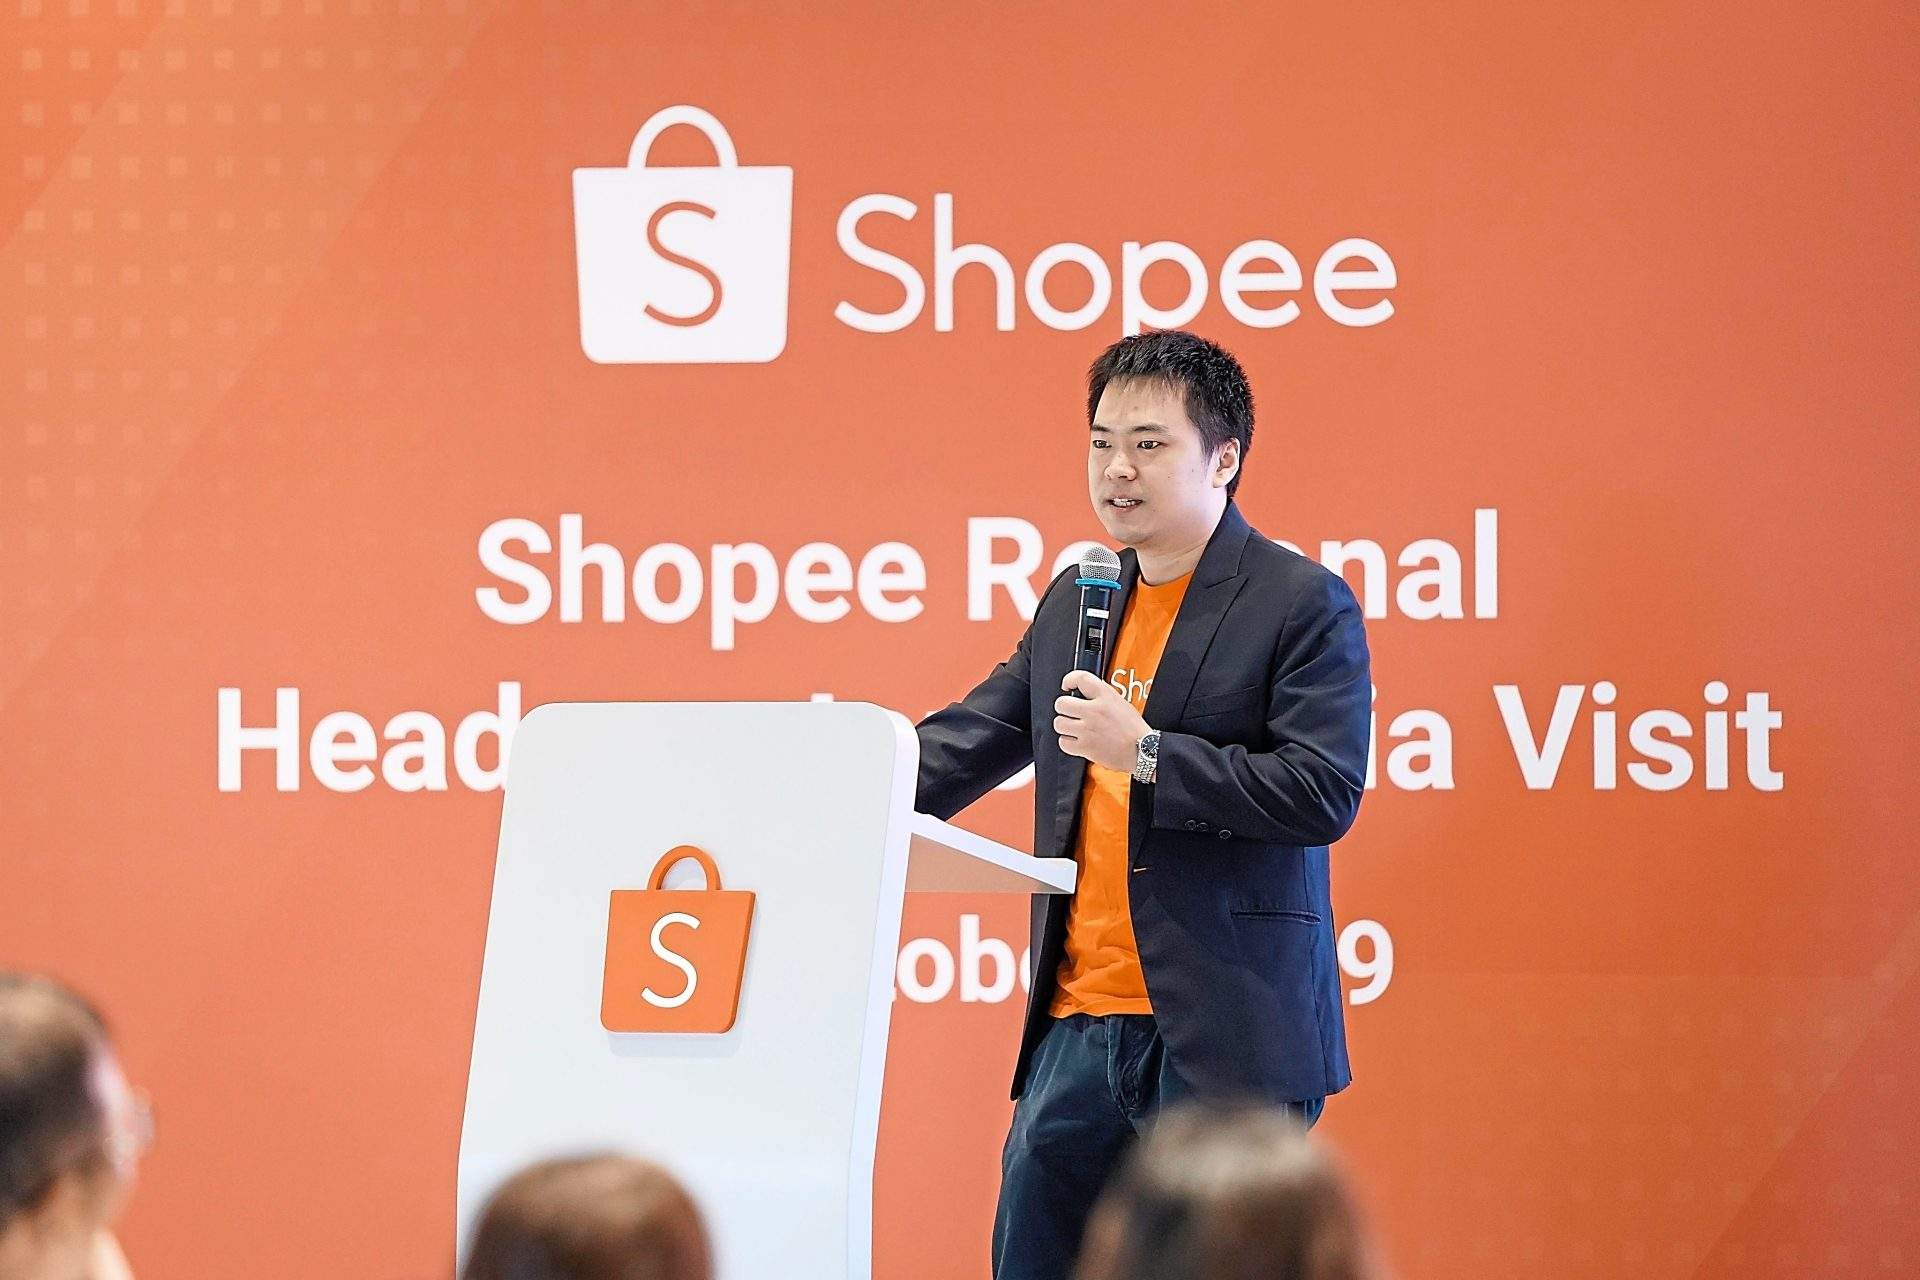 e-commerce platform Shopee confident of sustaining strong growth